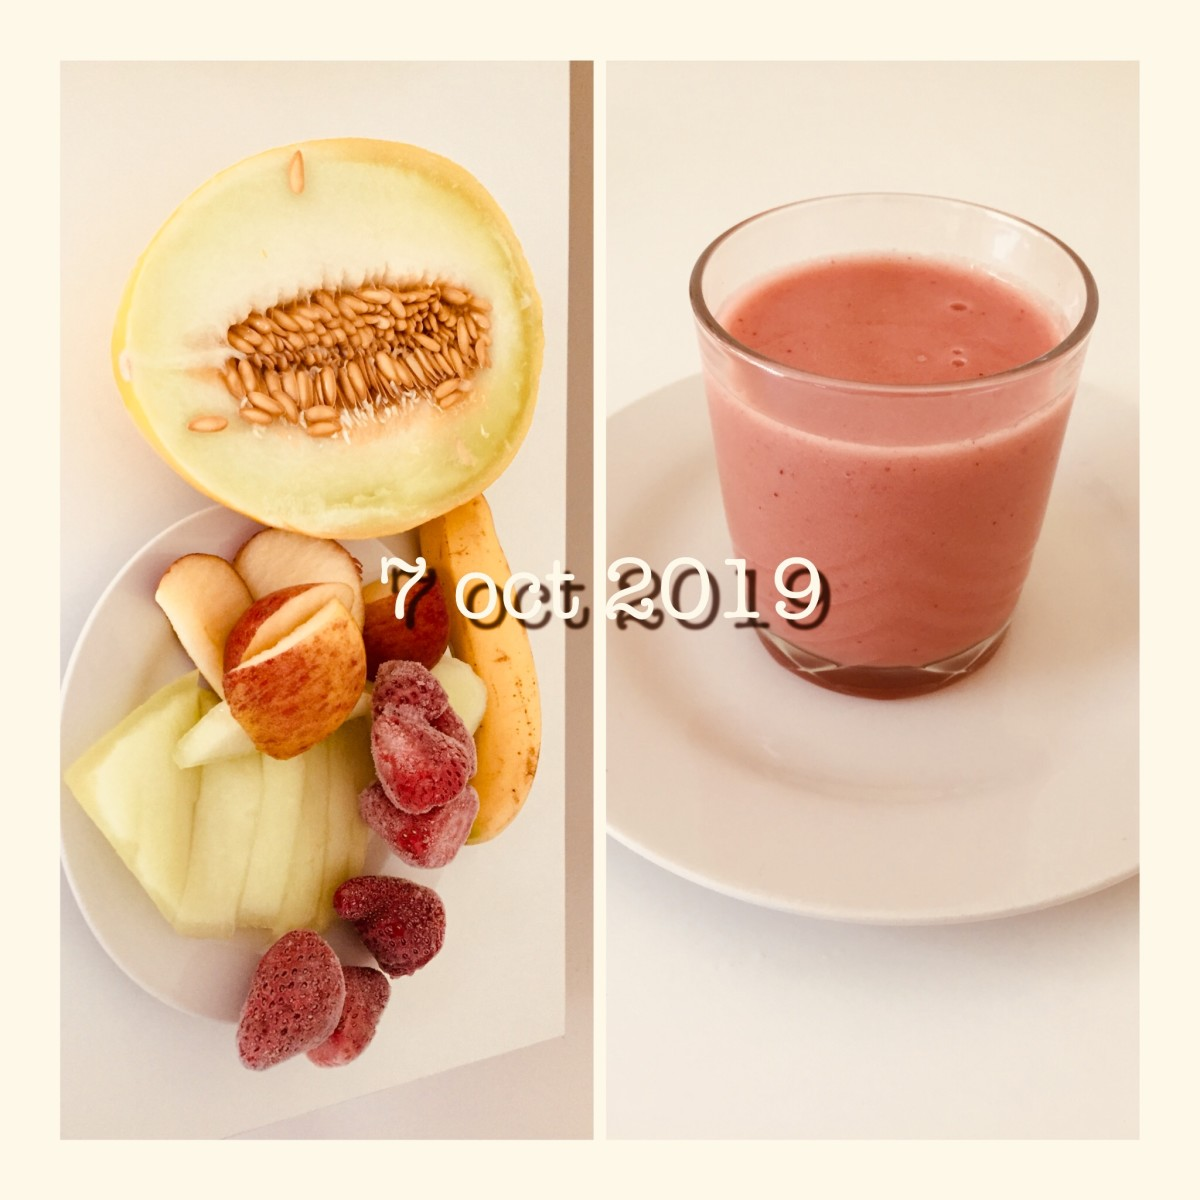 A quick blended juice using unpeeled apple, banana, piece of melon and some frozen strawberries. A delicious smooth and creamy drink.